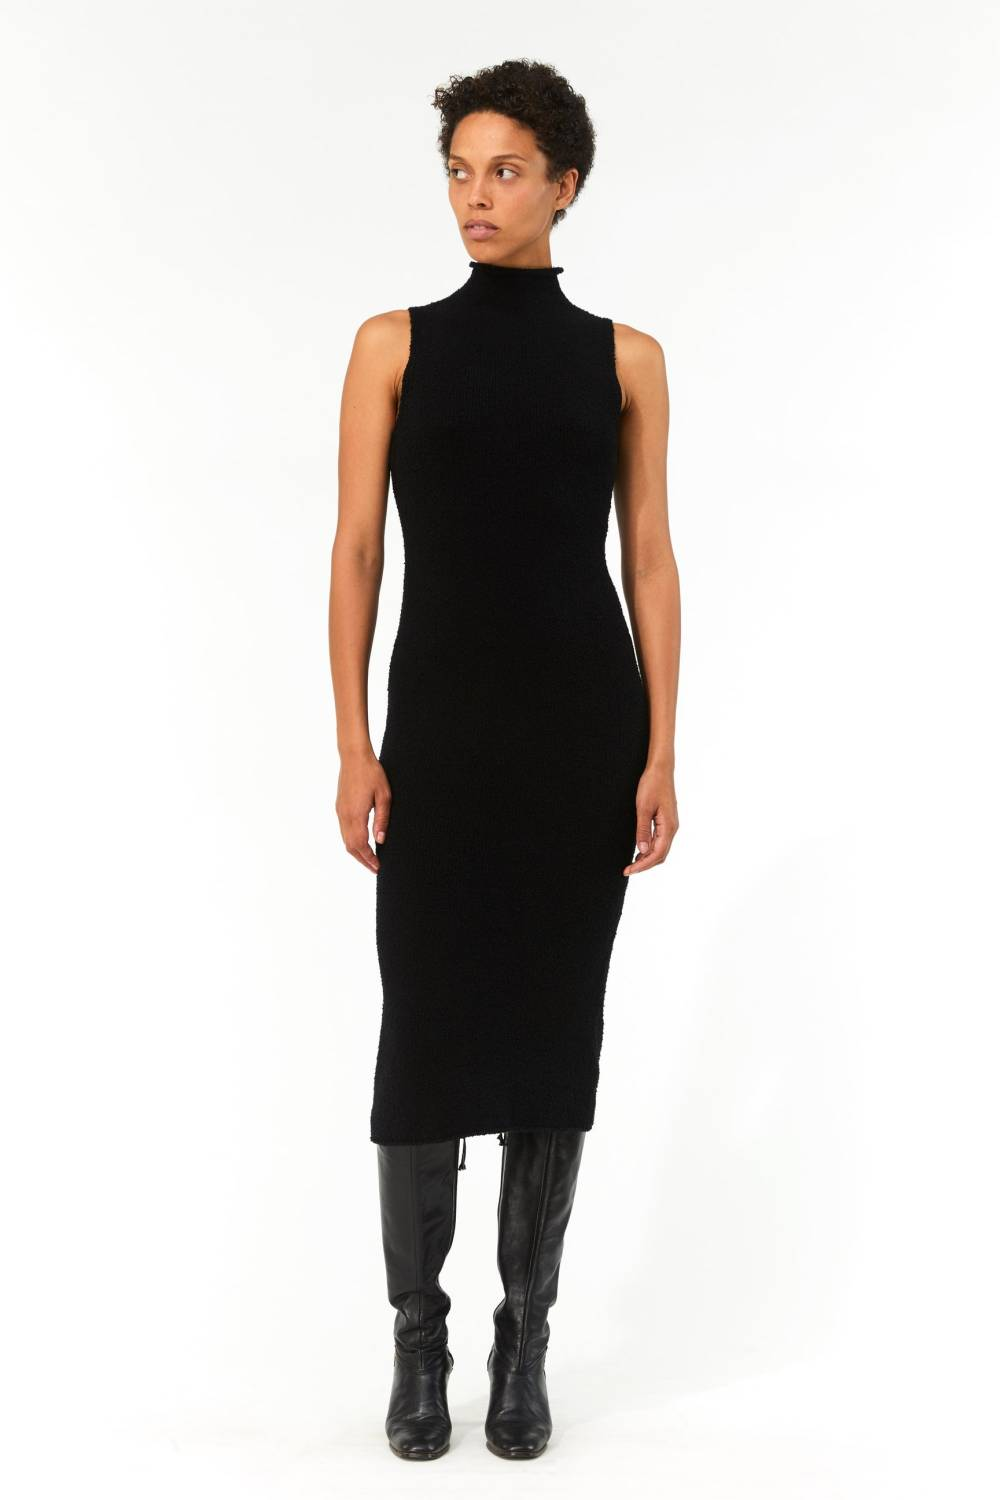 mara hoffman designer chic sweater dress